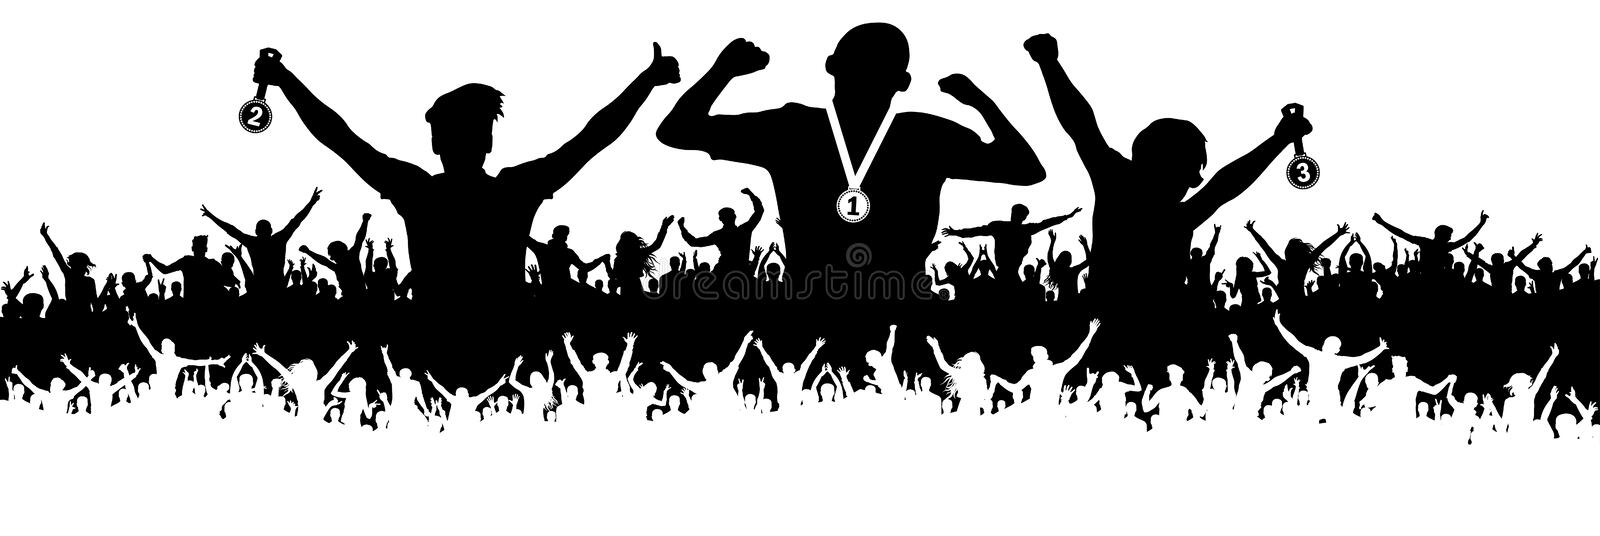 Crowd of sports fans silhouette. Ceremonies of awarding medals. Vector banner. Crowd of sports fans silhouette. Ceremonies of awarding medals. Vector banner stock illustration